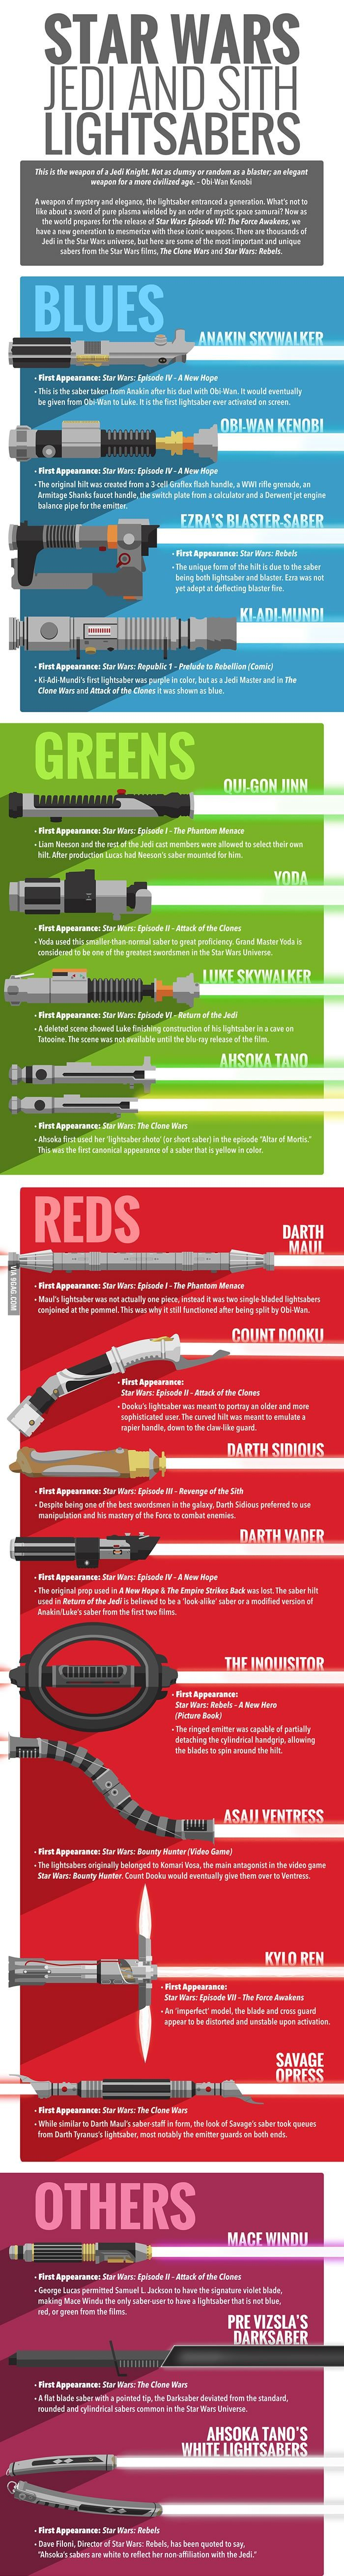 Infographic 'Star Wars' Lightsabers